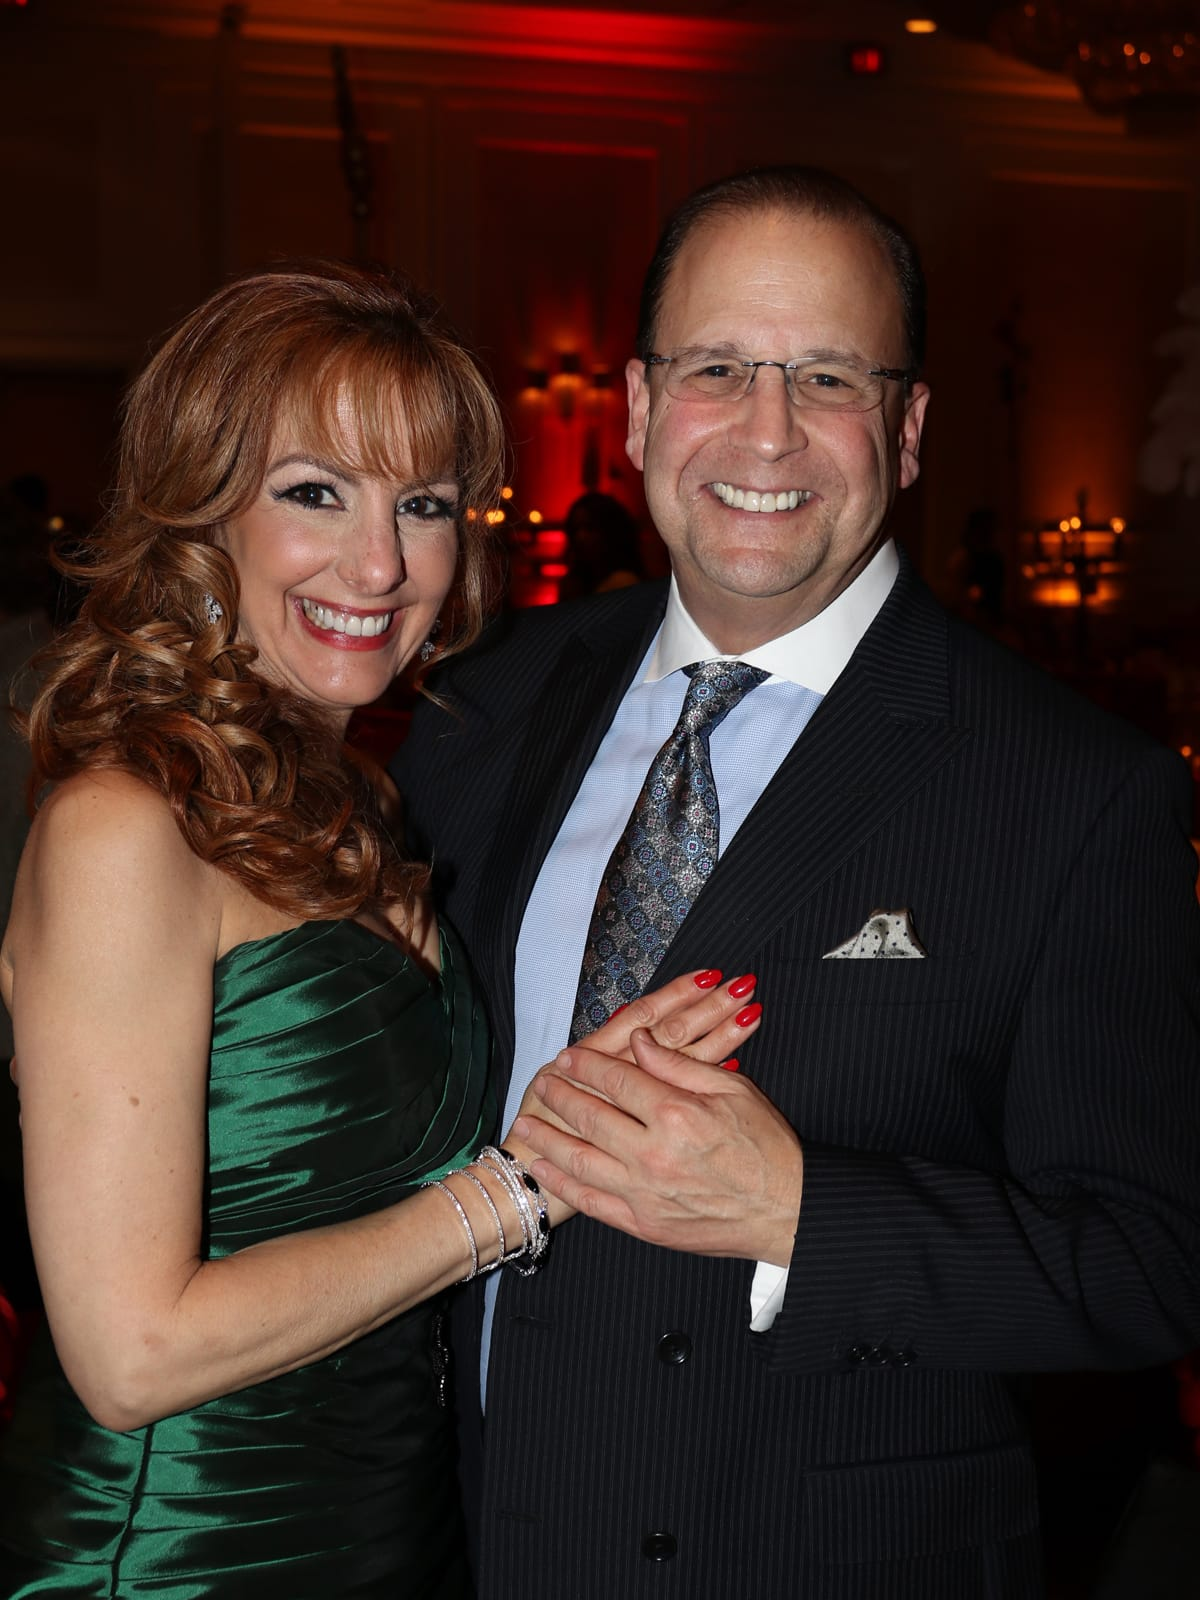 Seven Acres gala, Feb. 2016, Carole Fawcett, Michael Wiesenthal